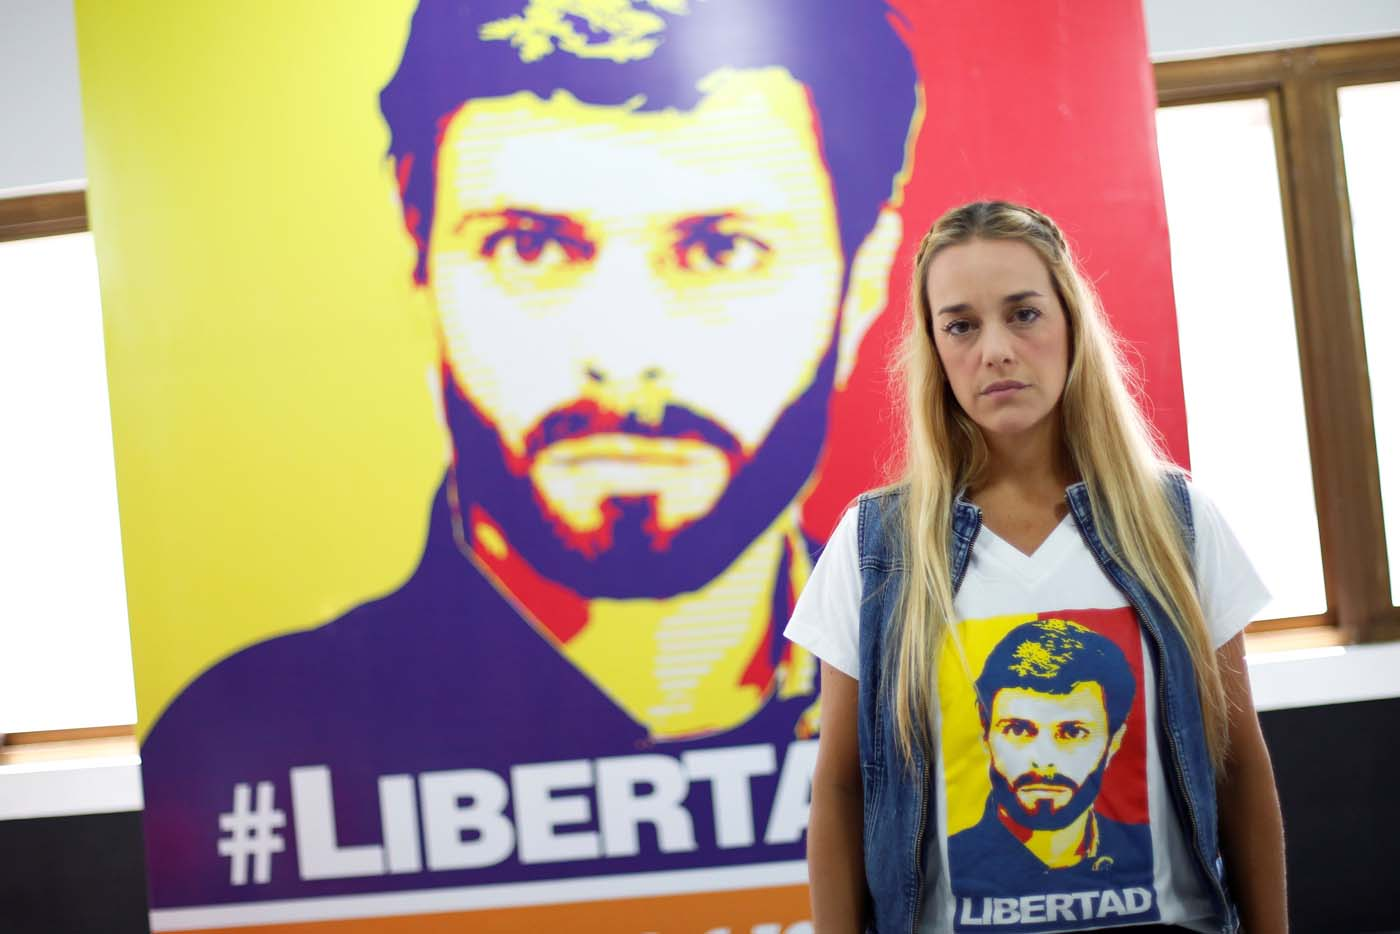 Lilian Tintori, wife of jailed Venezuelan opposition leader Leopoldo Lopez, poses for a picture in front of a poster depicting her husband at the office of the party Popular Will (Voluntad Popular) in Caracas, Venezuela January 18, 2017. Picture taken January 18, 2017. REUTERS/Carlos Garcia Rawlins